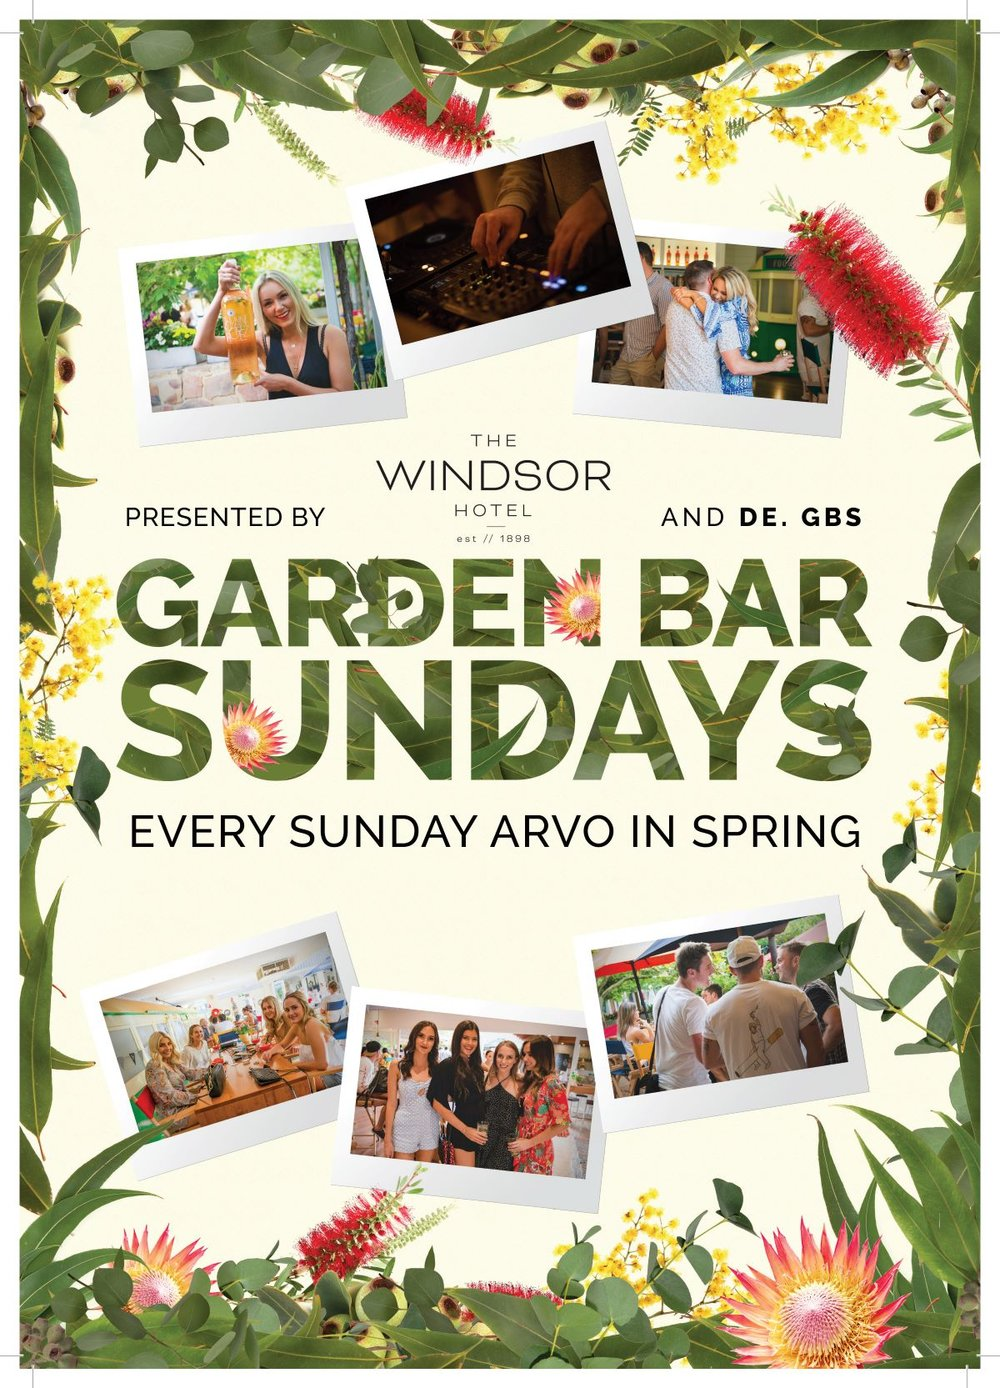 GARDEN BAR SUNDAYS  The best Sunday Session south of the river is here, in the Garden Bar every weekend. Including $8 Cocktails, $8 Ogdens Beers, $15 Grazing Boards and live DJ's spinning house and nu disco all afternoon long!